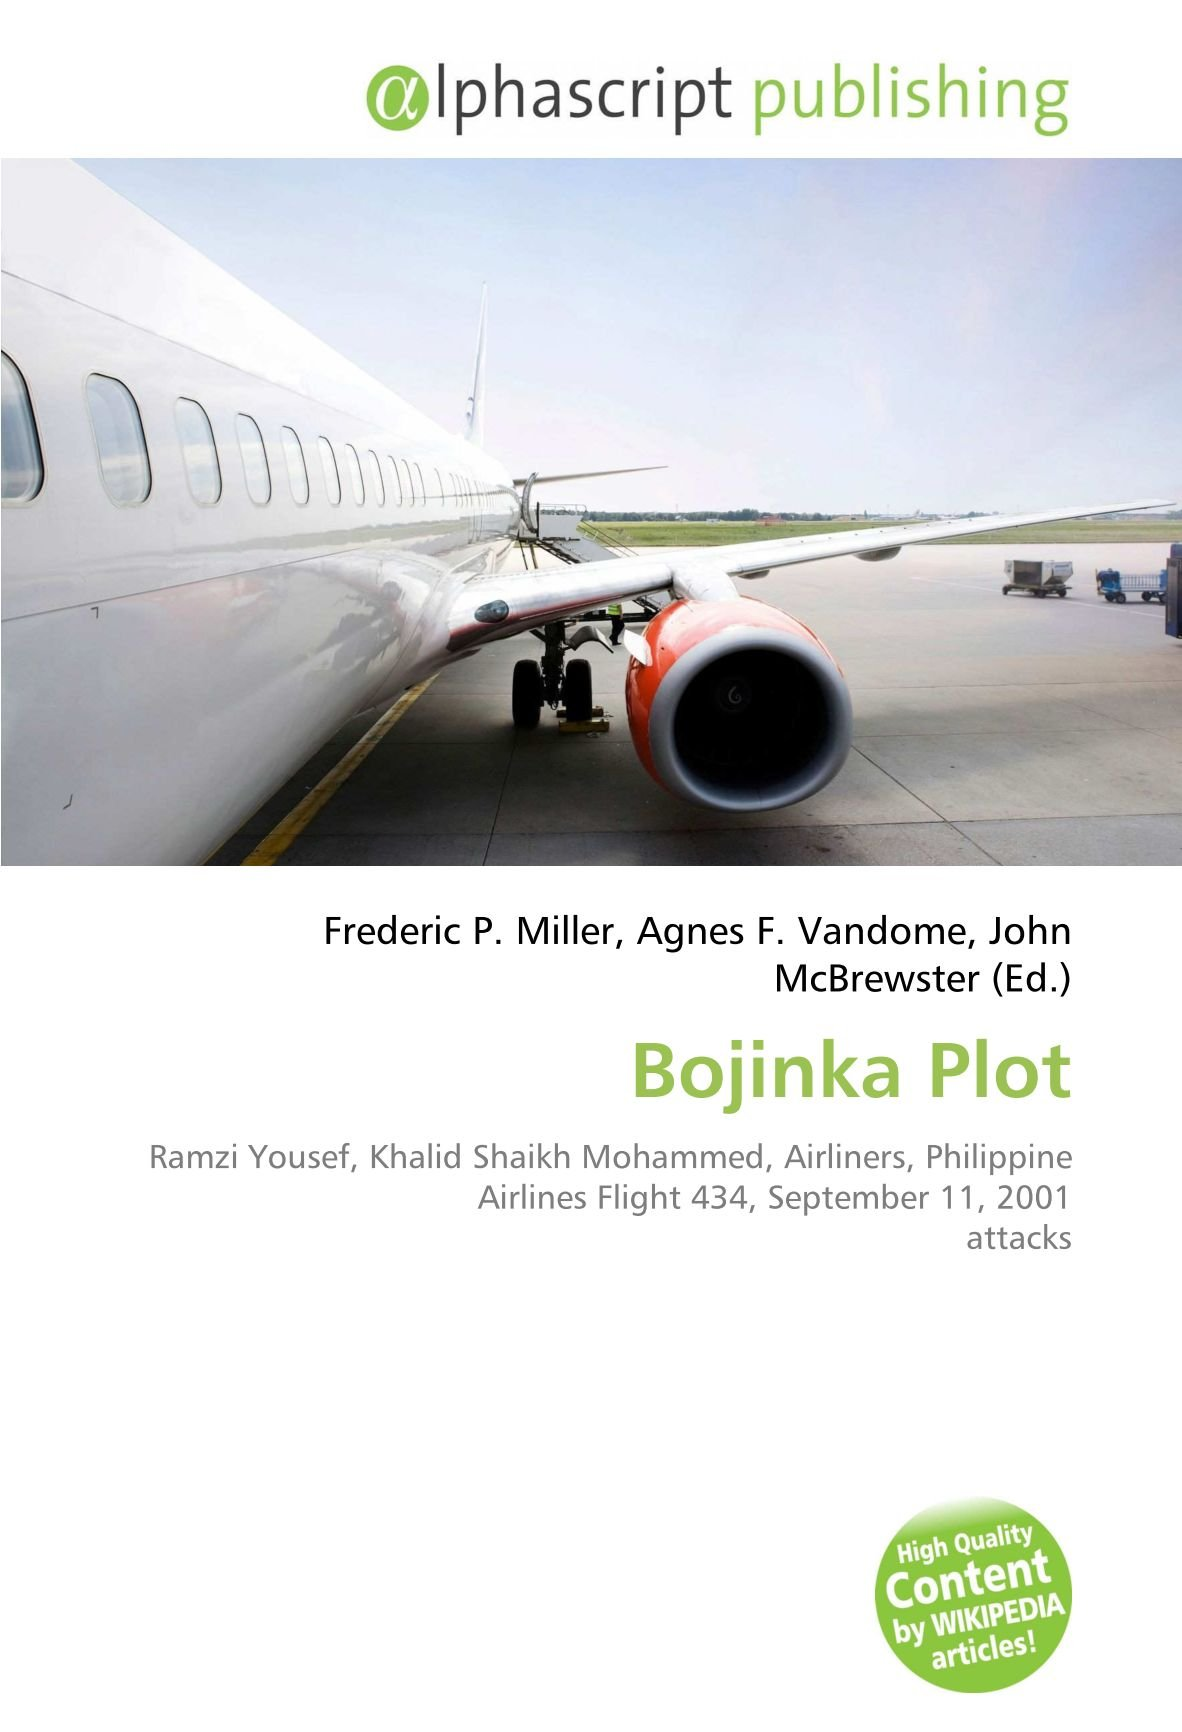 Bojinka Plot: Ramzi Yousef, Khalid Shaikh Mohammed, Airliners, Philippine Airlines Flight 434, September 11, 2001 attacks: Amazon.es: Miller, Frederic P, Vandome, Agnes F, McBrewster, John: Libros en idiomas extranjeros